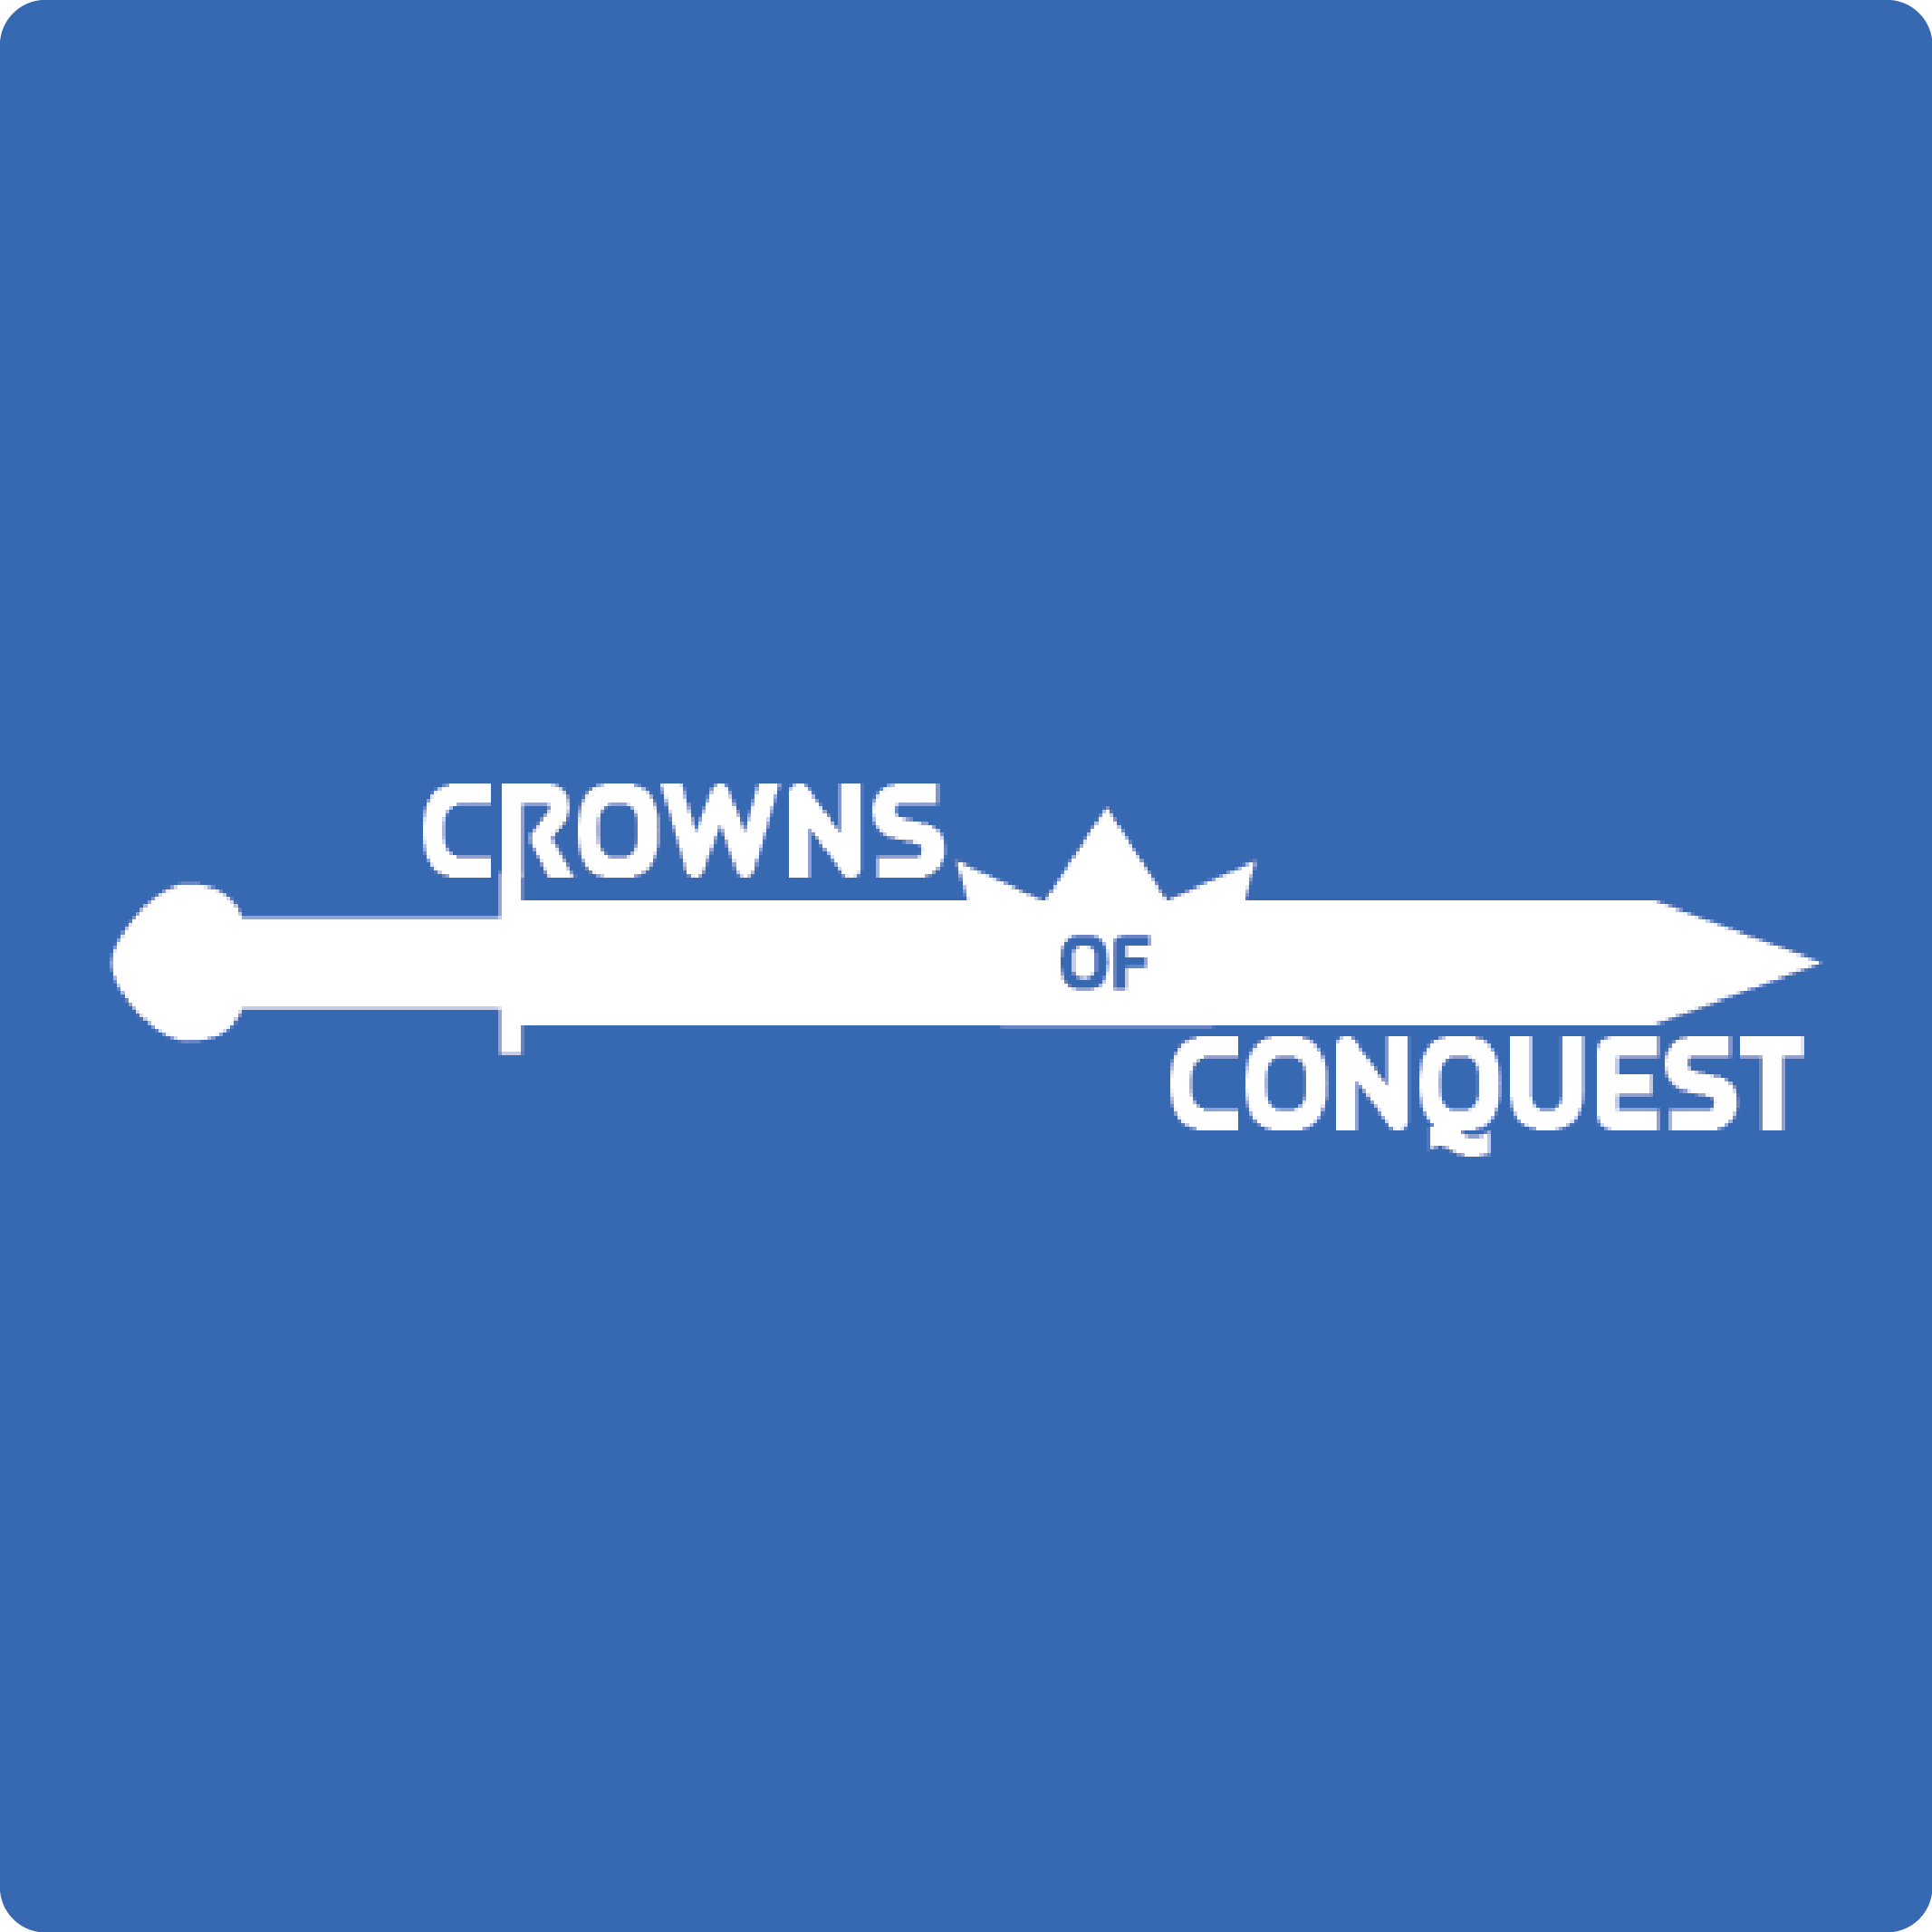 Crowns of Conquest